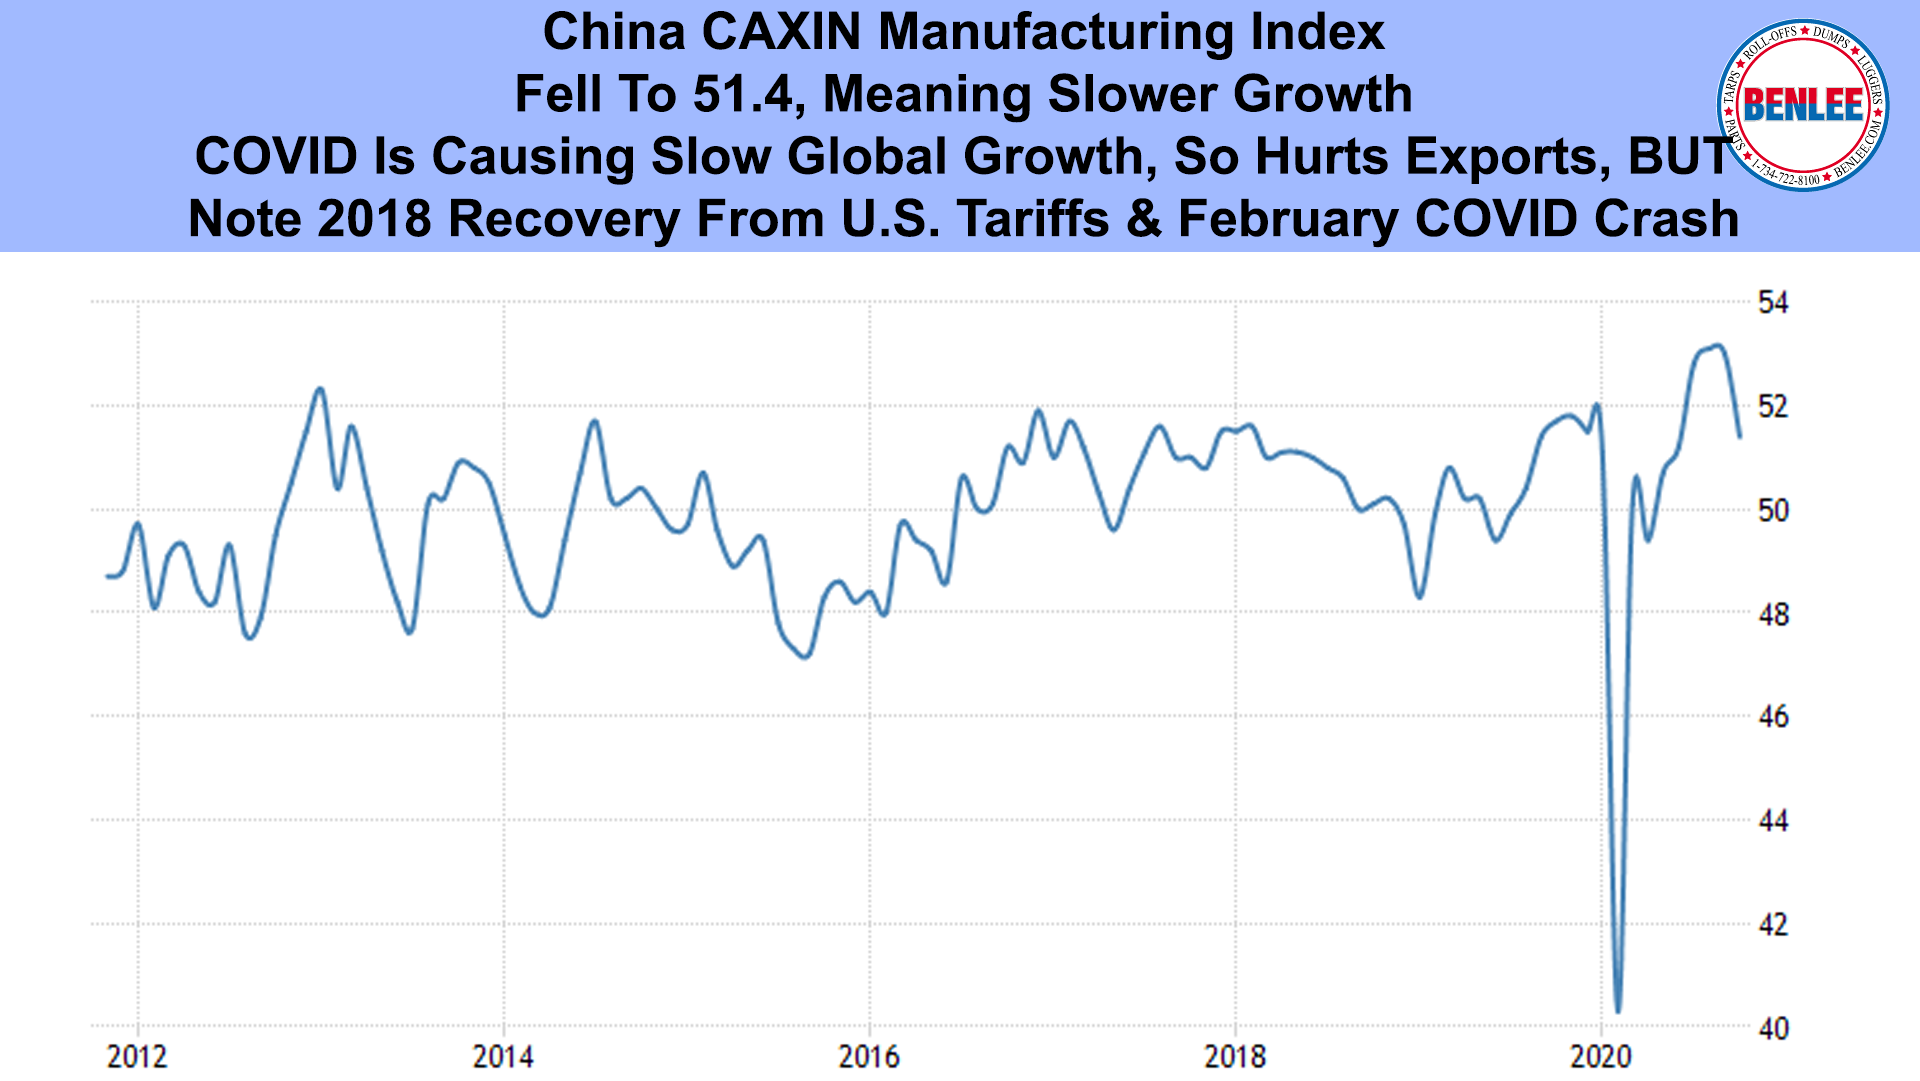 China CAXIN Manufacturing Index